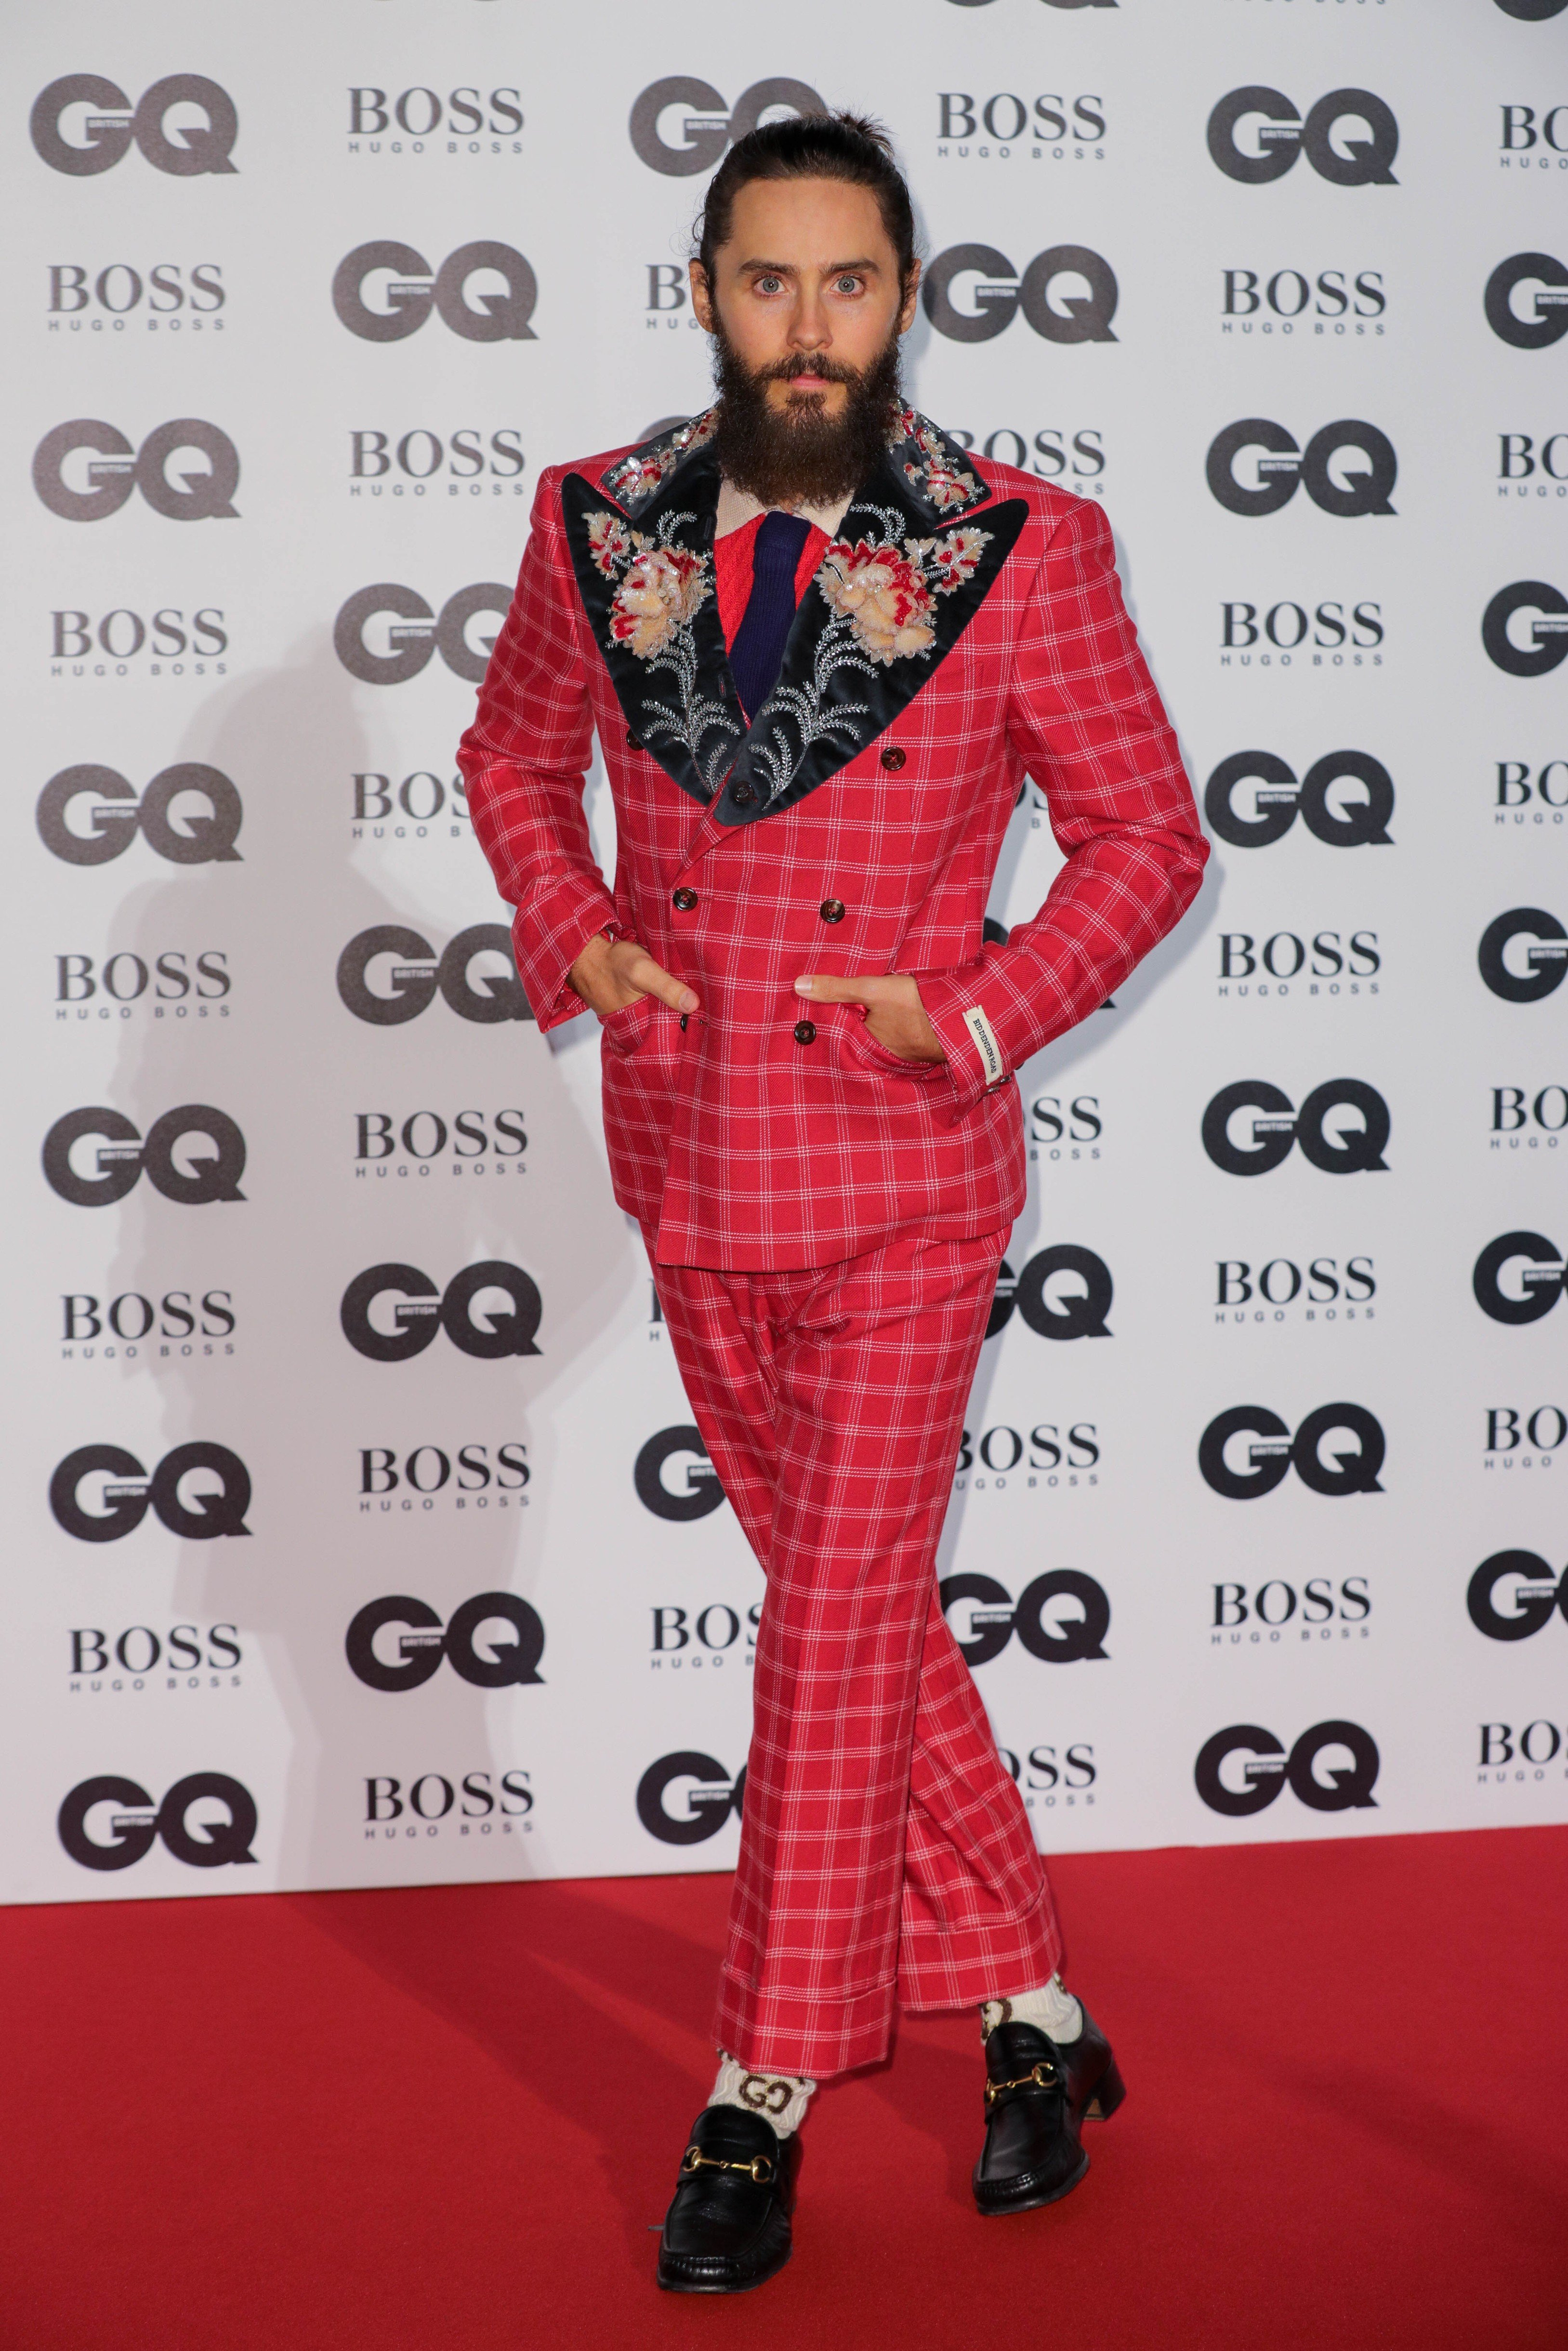 Jared Leto arrives for the GQ Men of the Year Awards at the Tate Modern, London, UK, Image: 348448053, License: Rights-managed, Restrictions: WORLD RIGHTS- Fee Payable Upon Reproduction - For queries contact Avalon.red - sales@avalon.red  London: +44 (0) 20 7421 6000  Los Angeles: +1 (310) 822 0419  Berlin: +49 (0) 30 76 212 251, Model Release: no, Credit line: Profimedia, Uppa entertainment